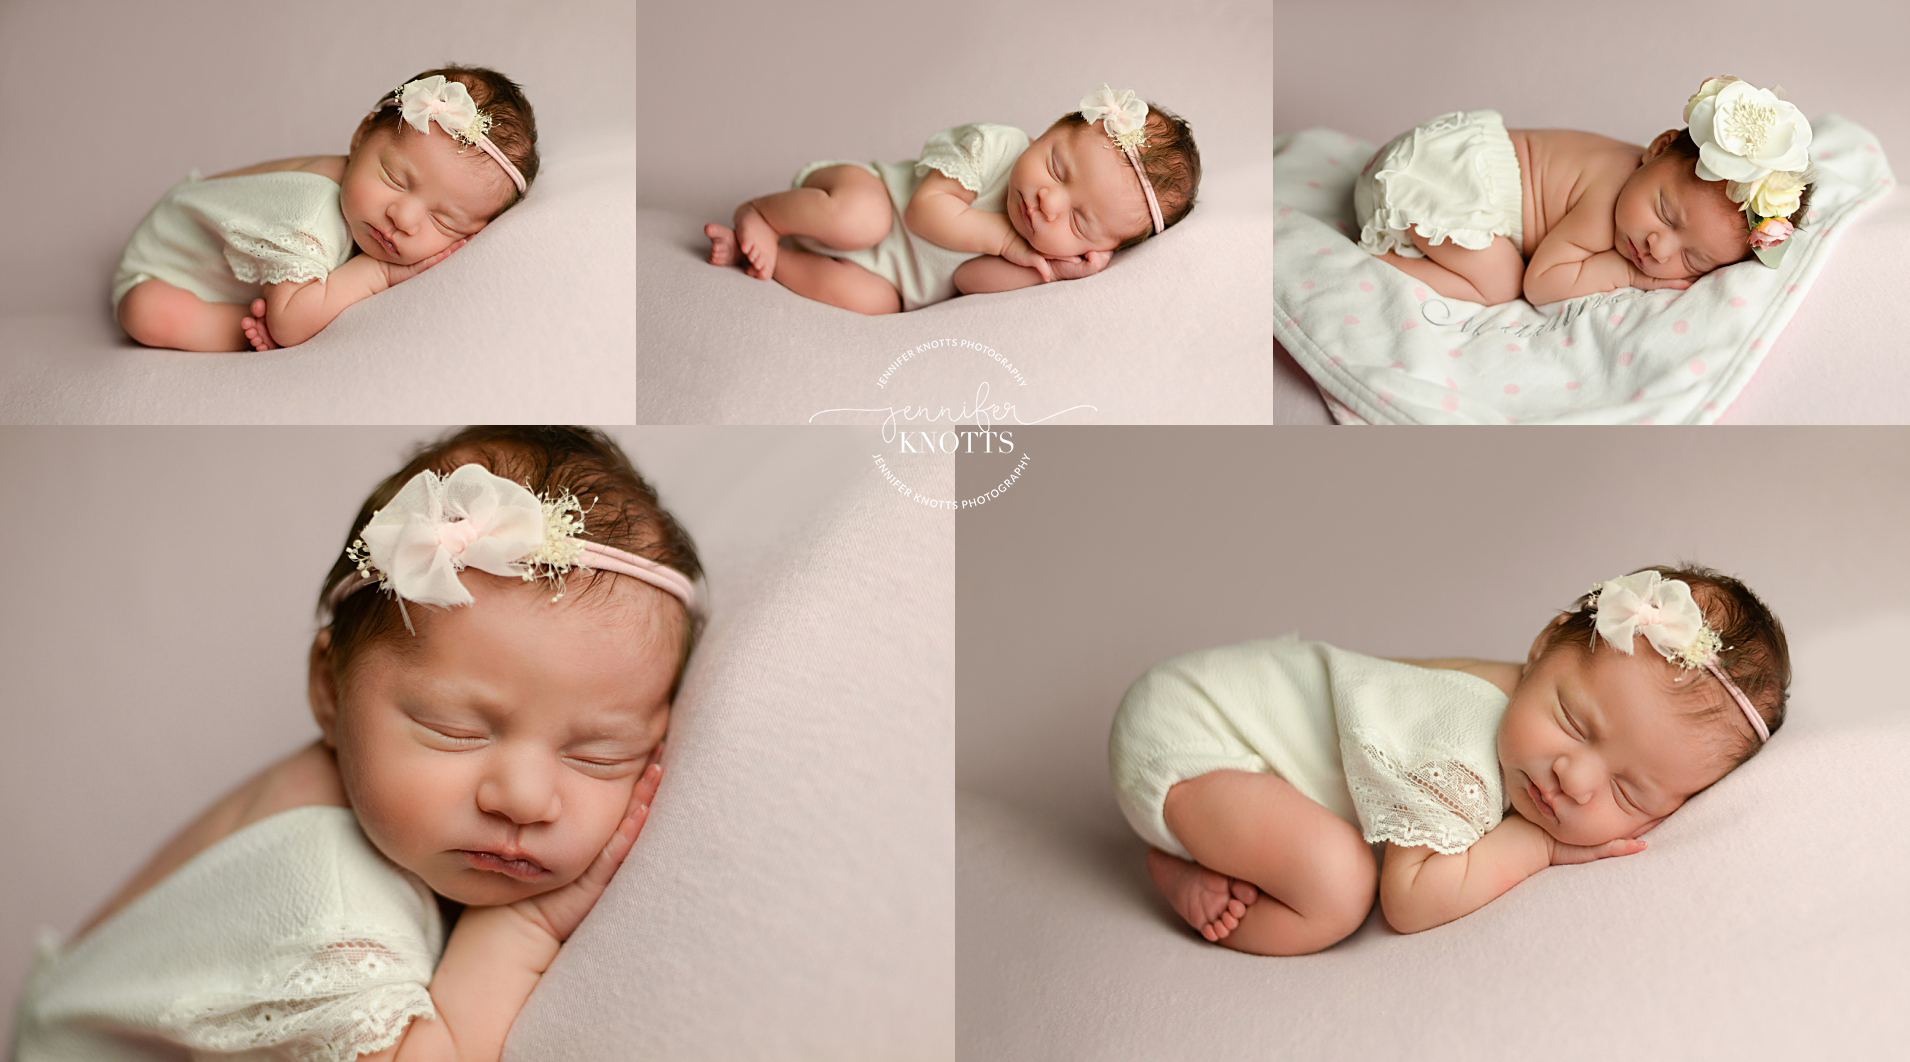 baby girl sleeps on pink fabric wearing cream romper during Wilmington newborn session